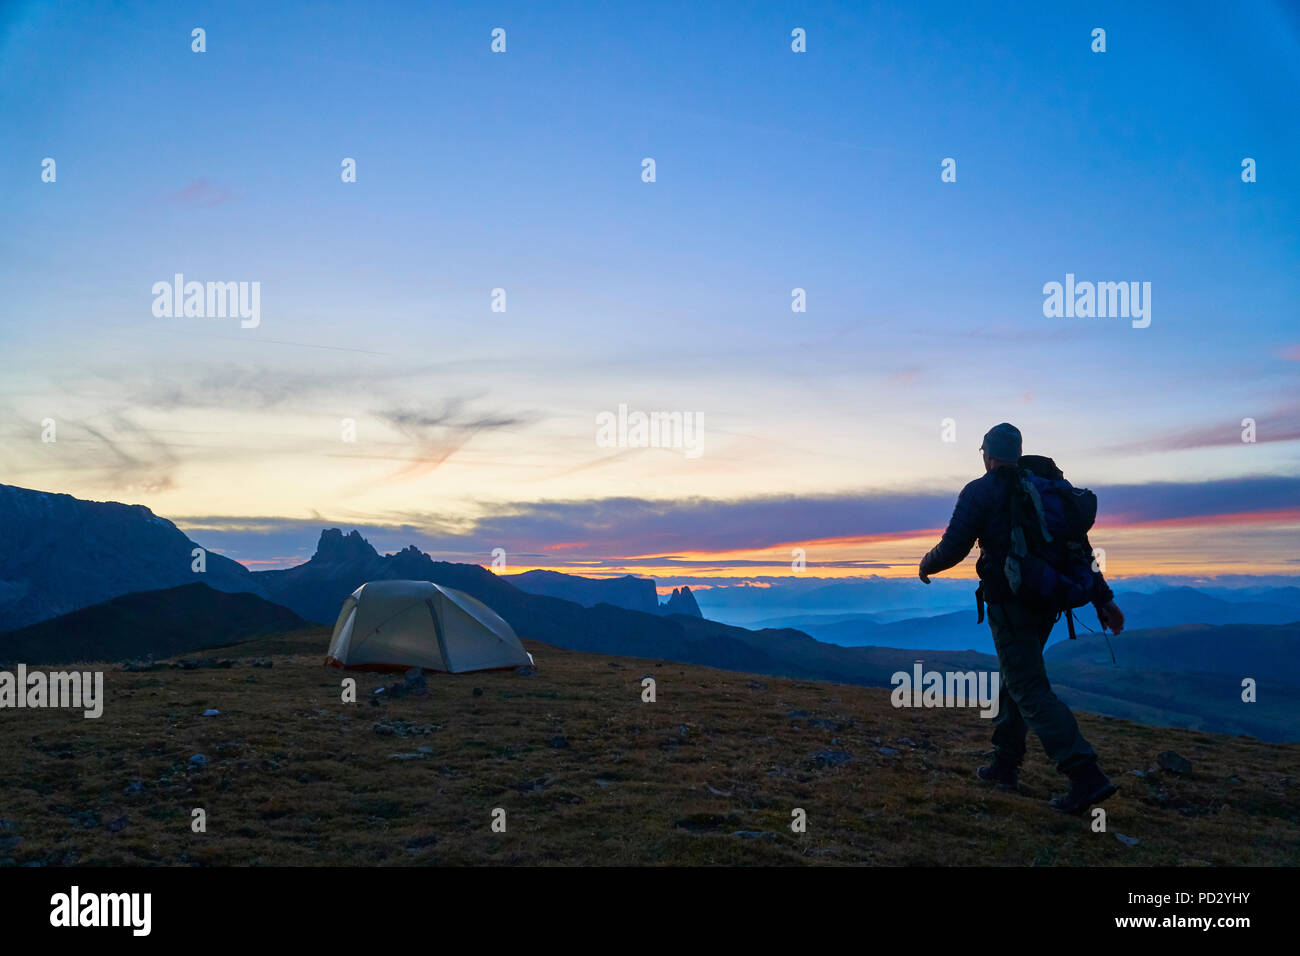 Hiker walking to his tent at sunset, Canazei, Trentino-Alto Adige, Italy - Stock Image